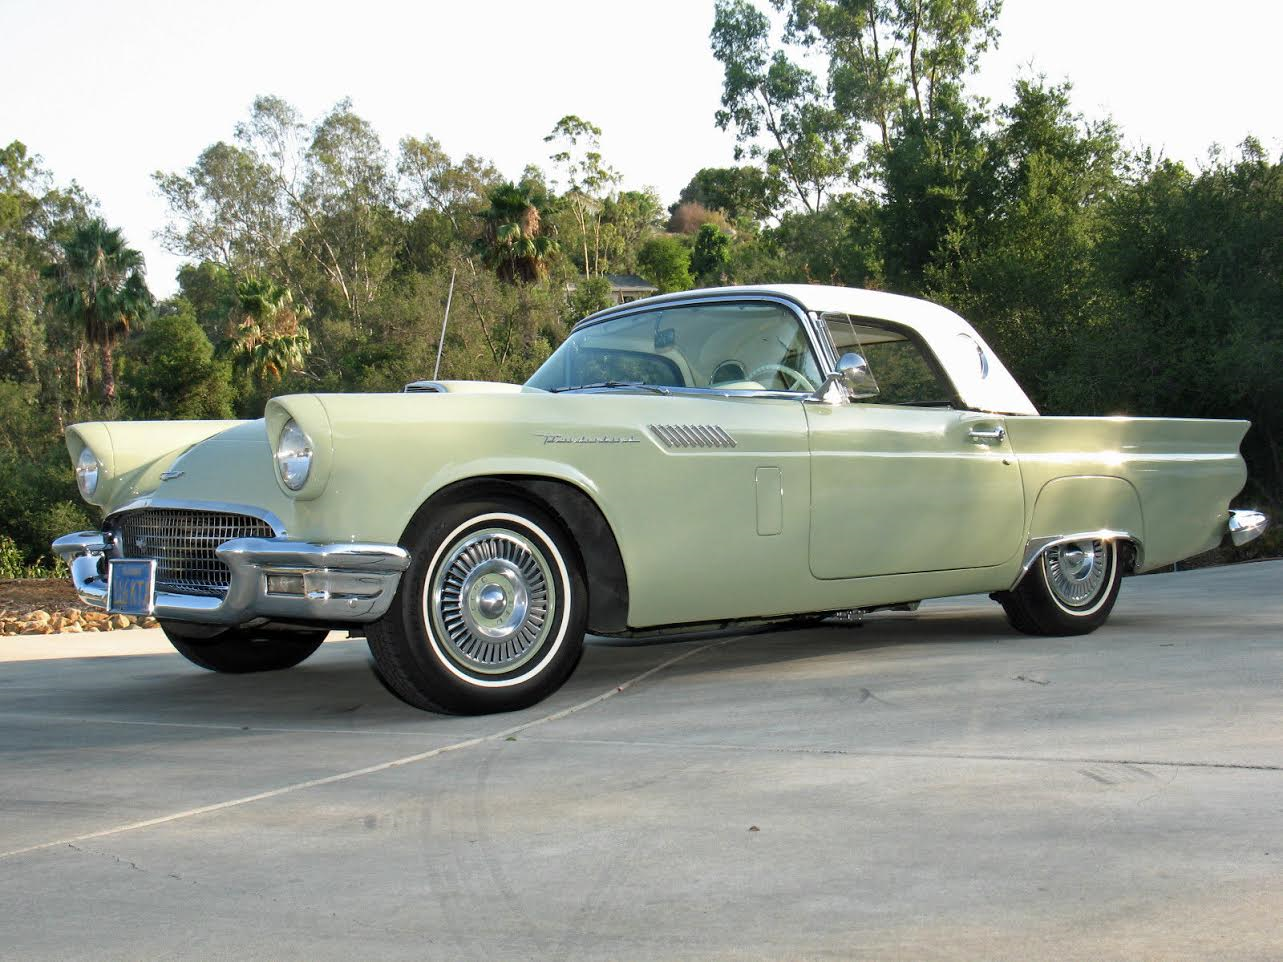 1957 Ford Tbird Convertible with Assy Hardtop For Sale (picture 1 of 6)